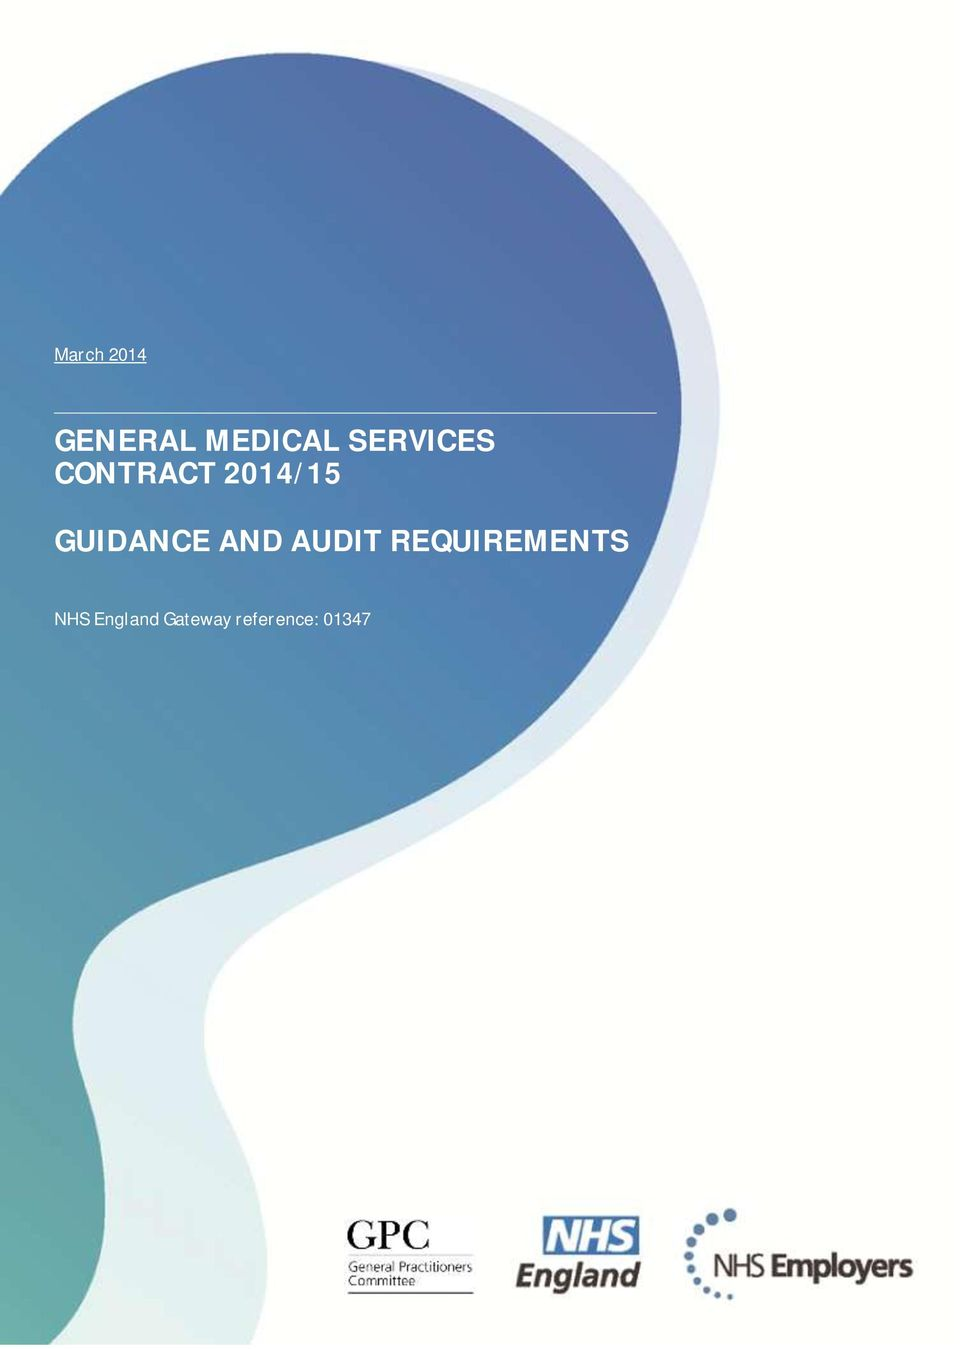 GUIDANCE AND AUDIT